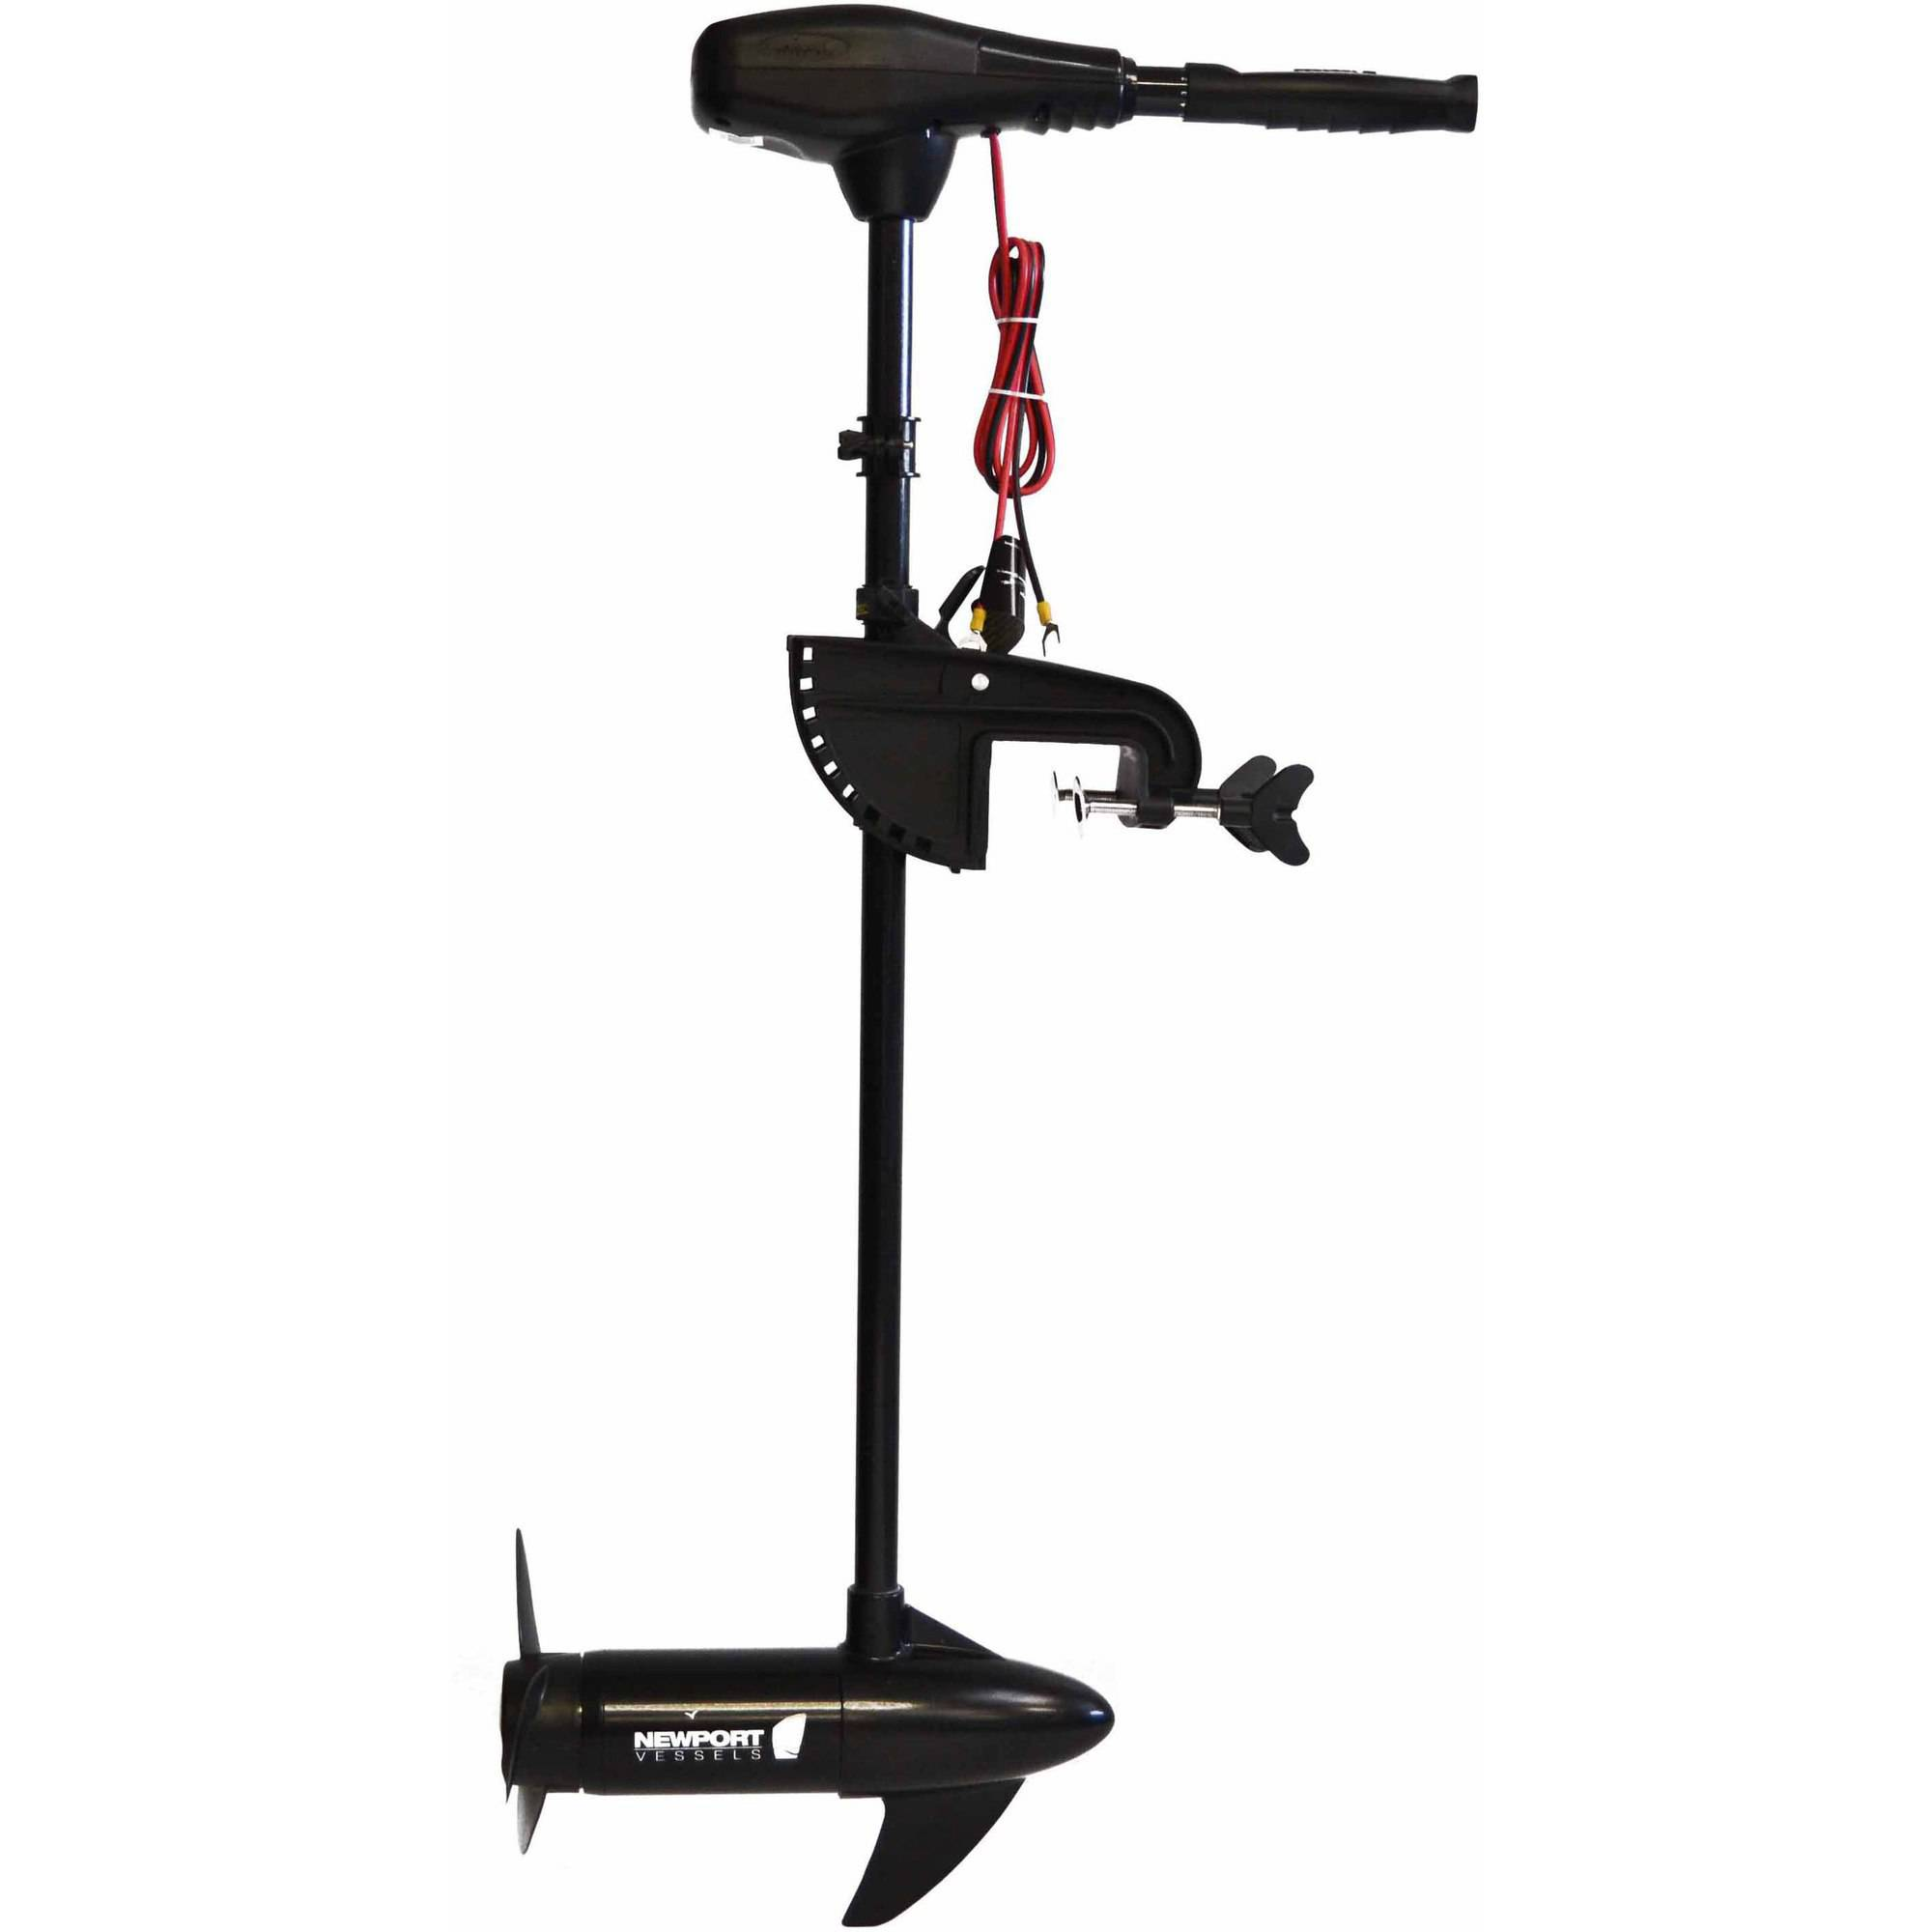 "Newport Vessels 86-Pound Thrust Electric Trolling Motor, 36"" Shaft by Newport Vessels"